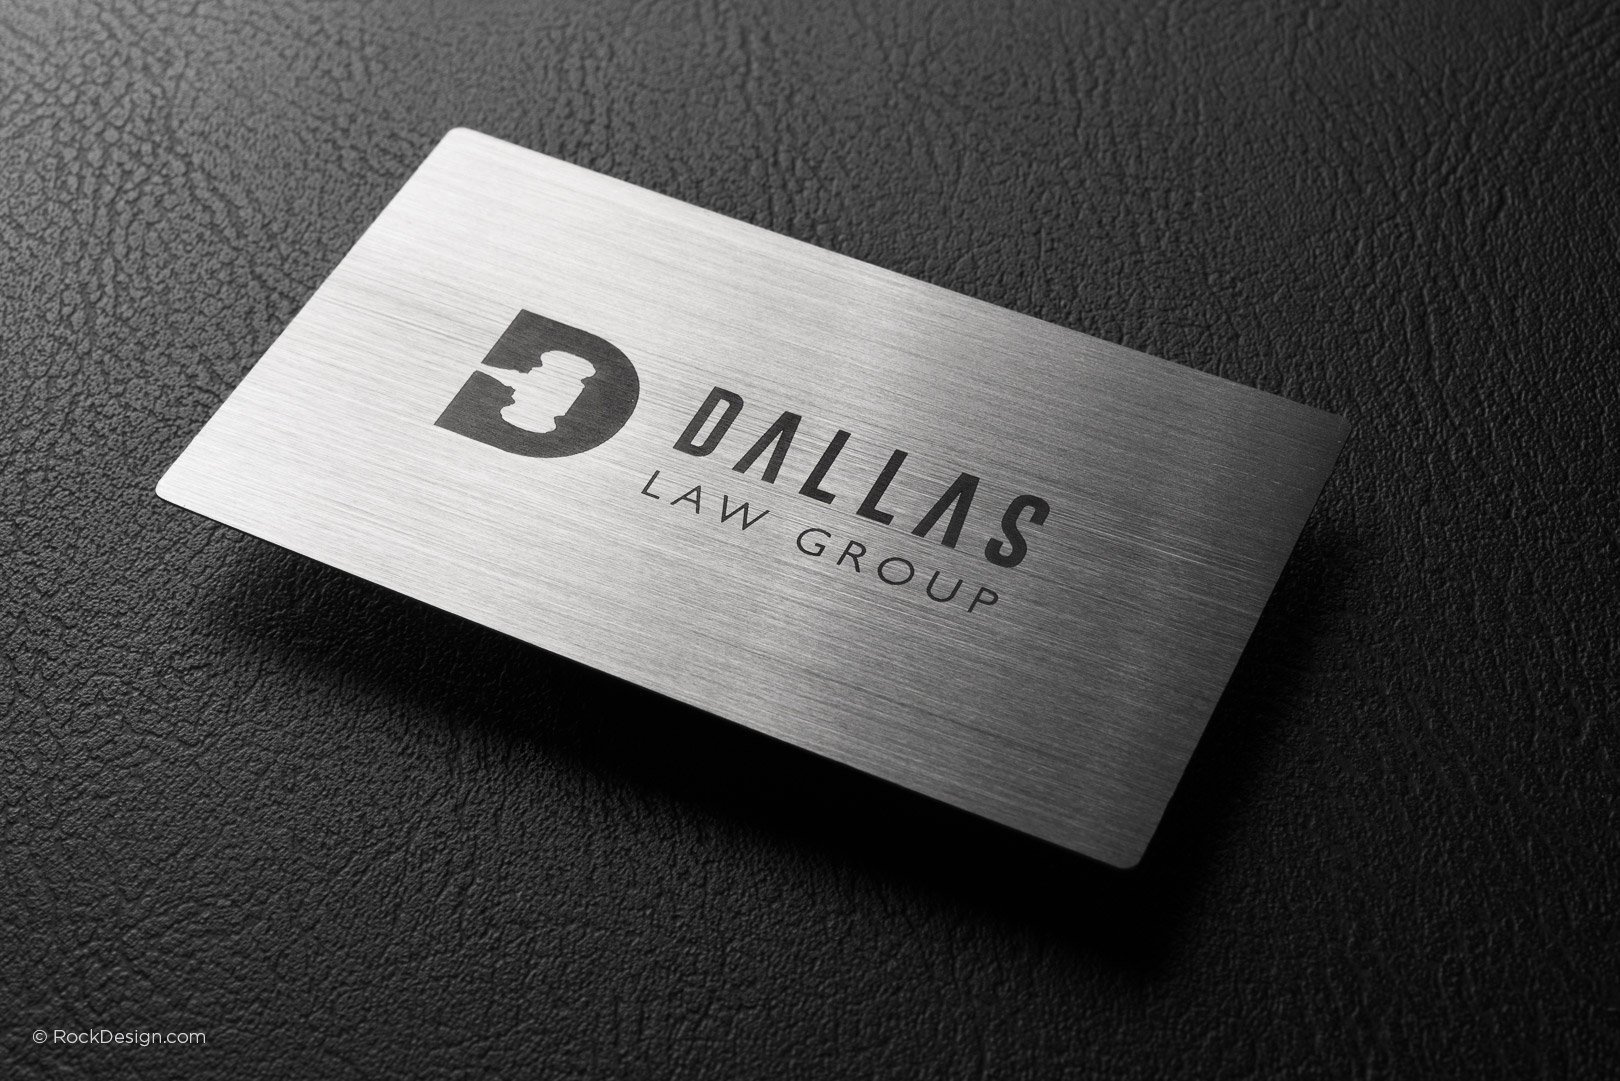 Nyu business cards image collections free business cards nyu business cards gallery free business cards nyu business cards choice image free business cards nyu magicingreecefo Gallery